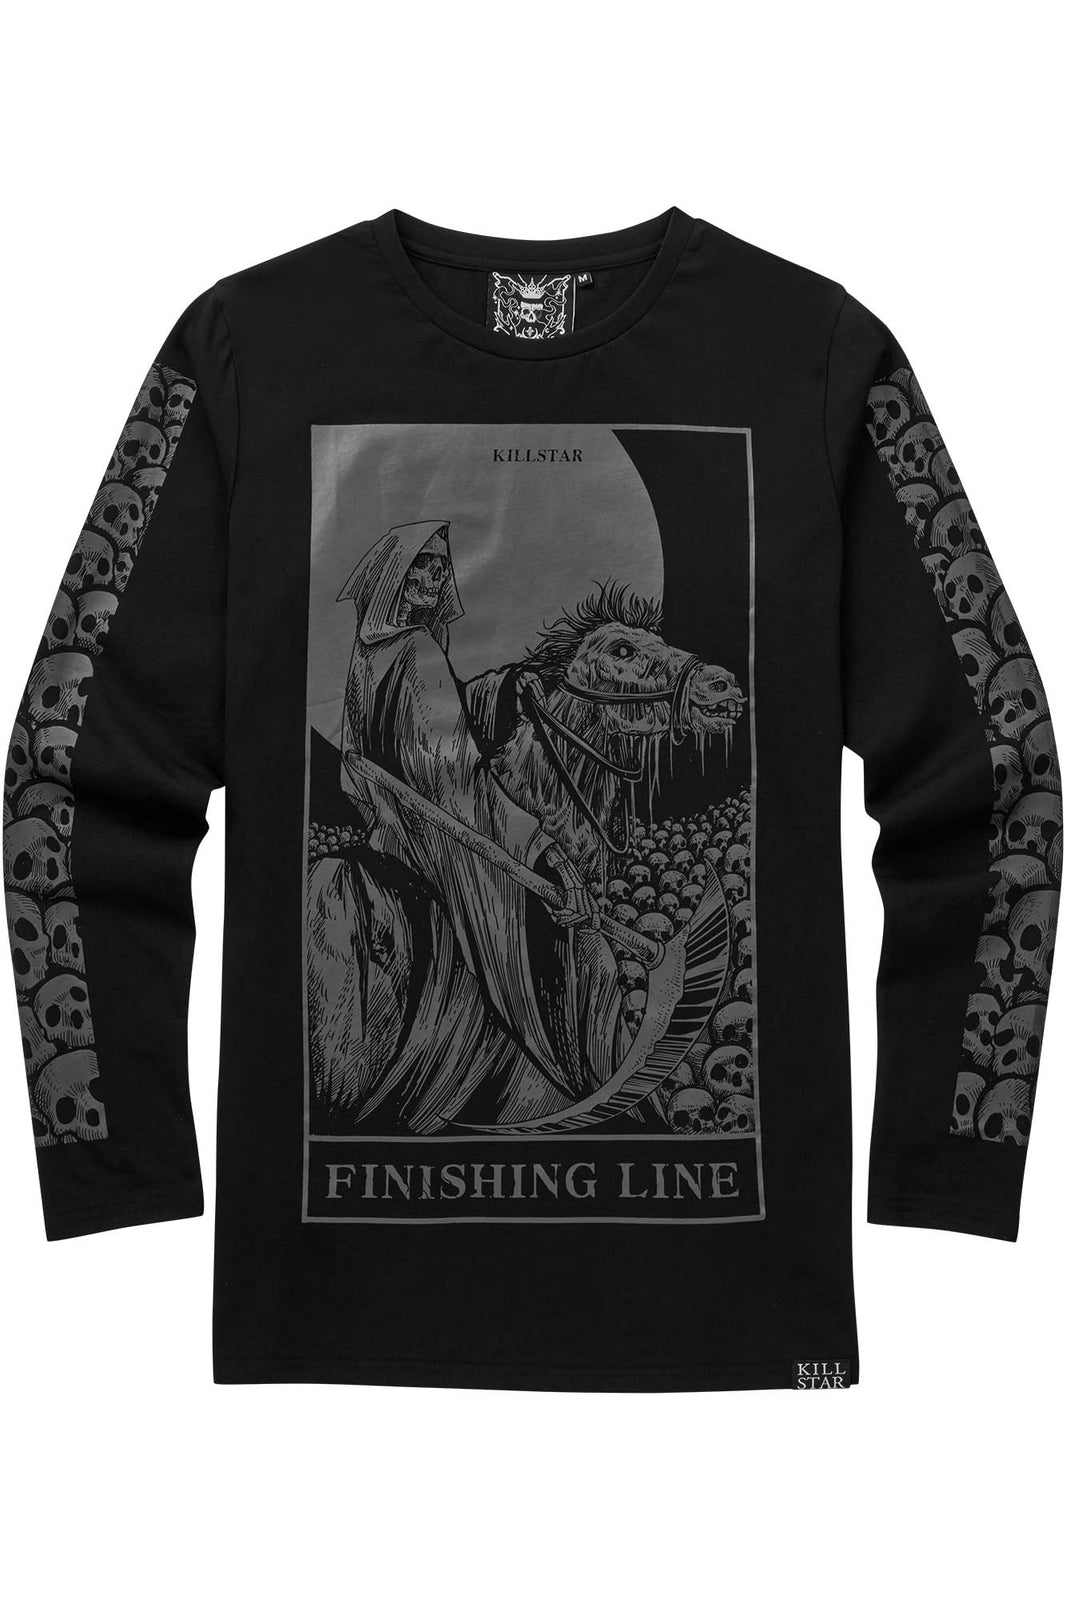 Finishing Line Long Sleeve Top